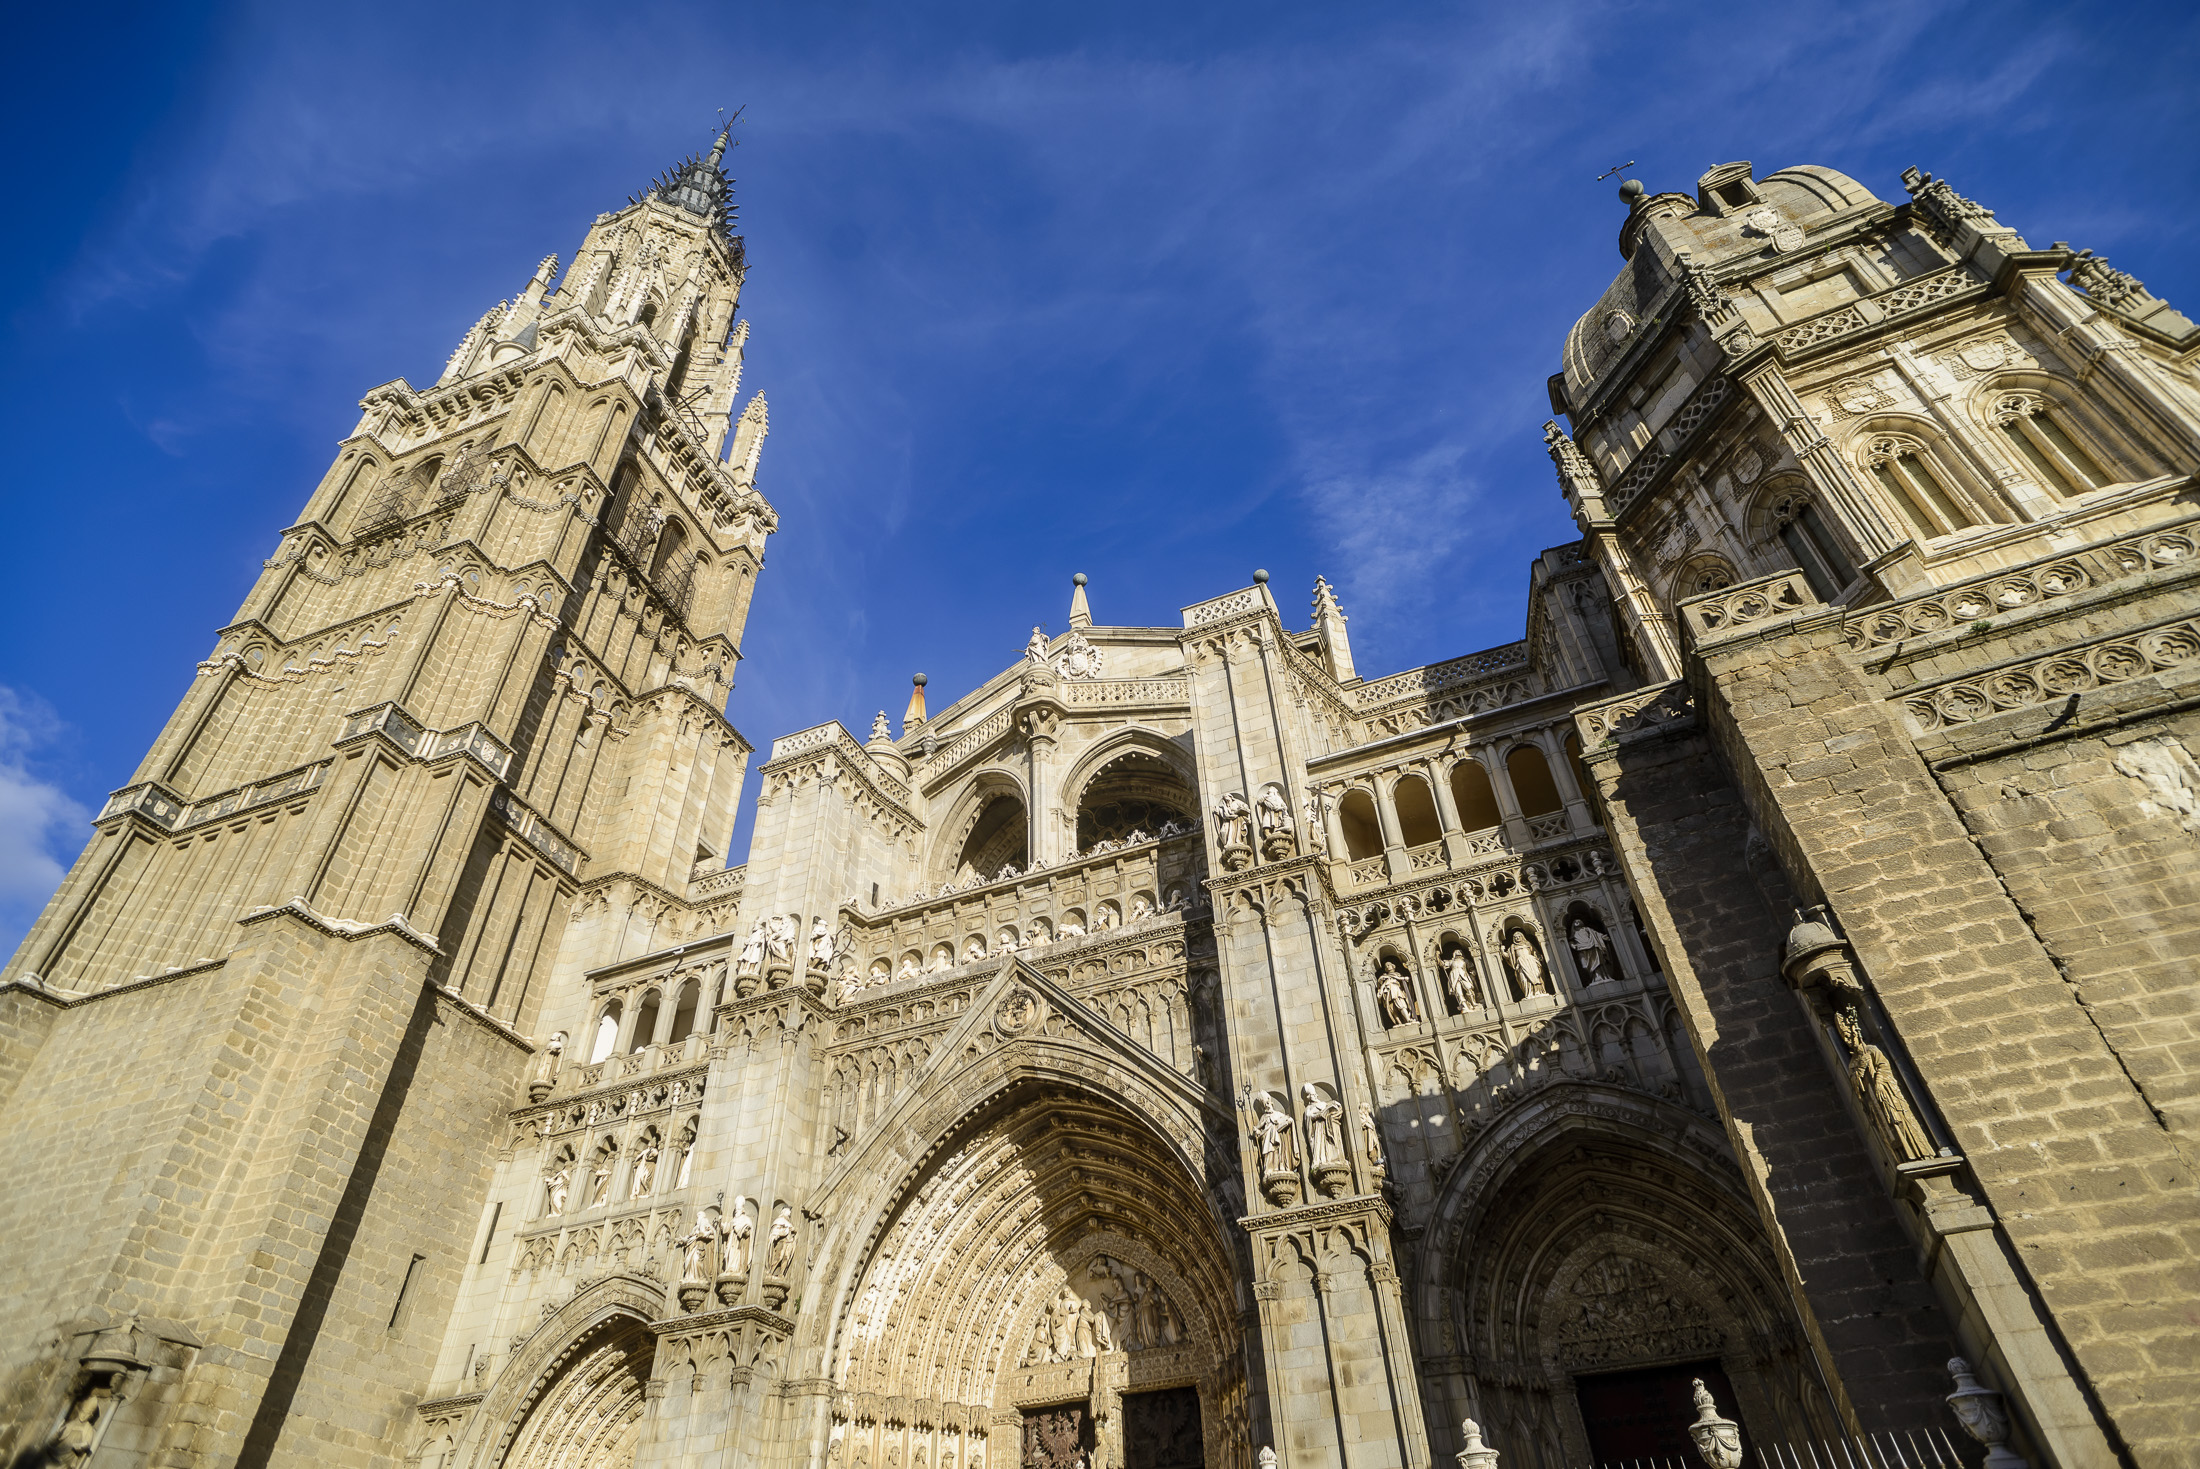 Toledo's Cathedral from below